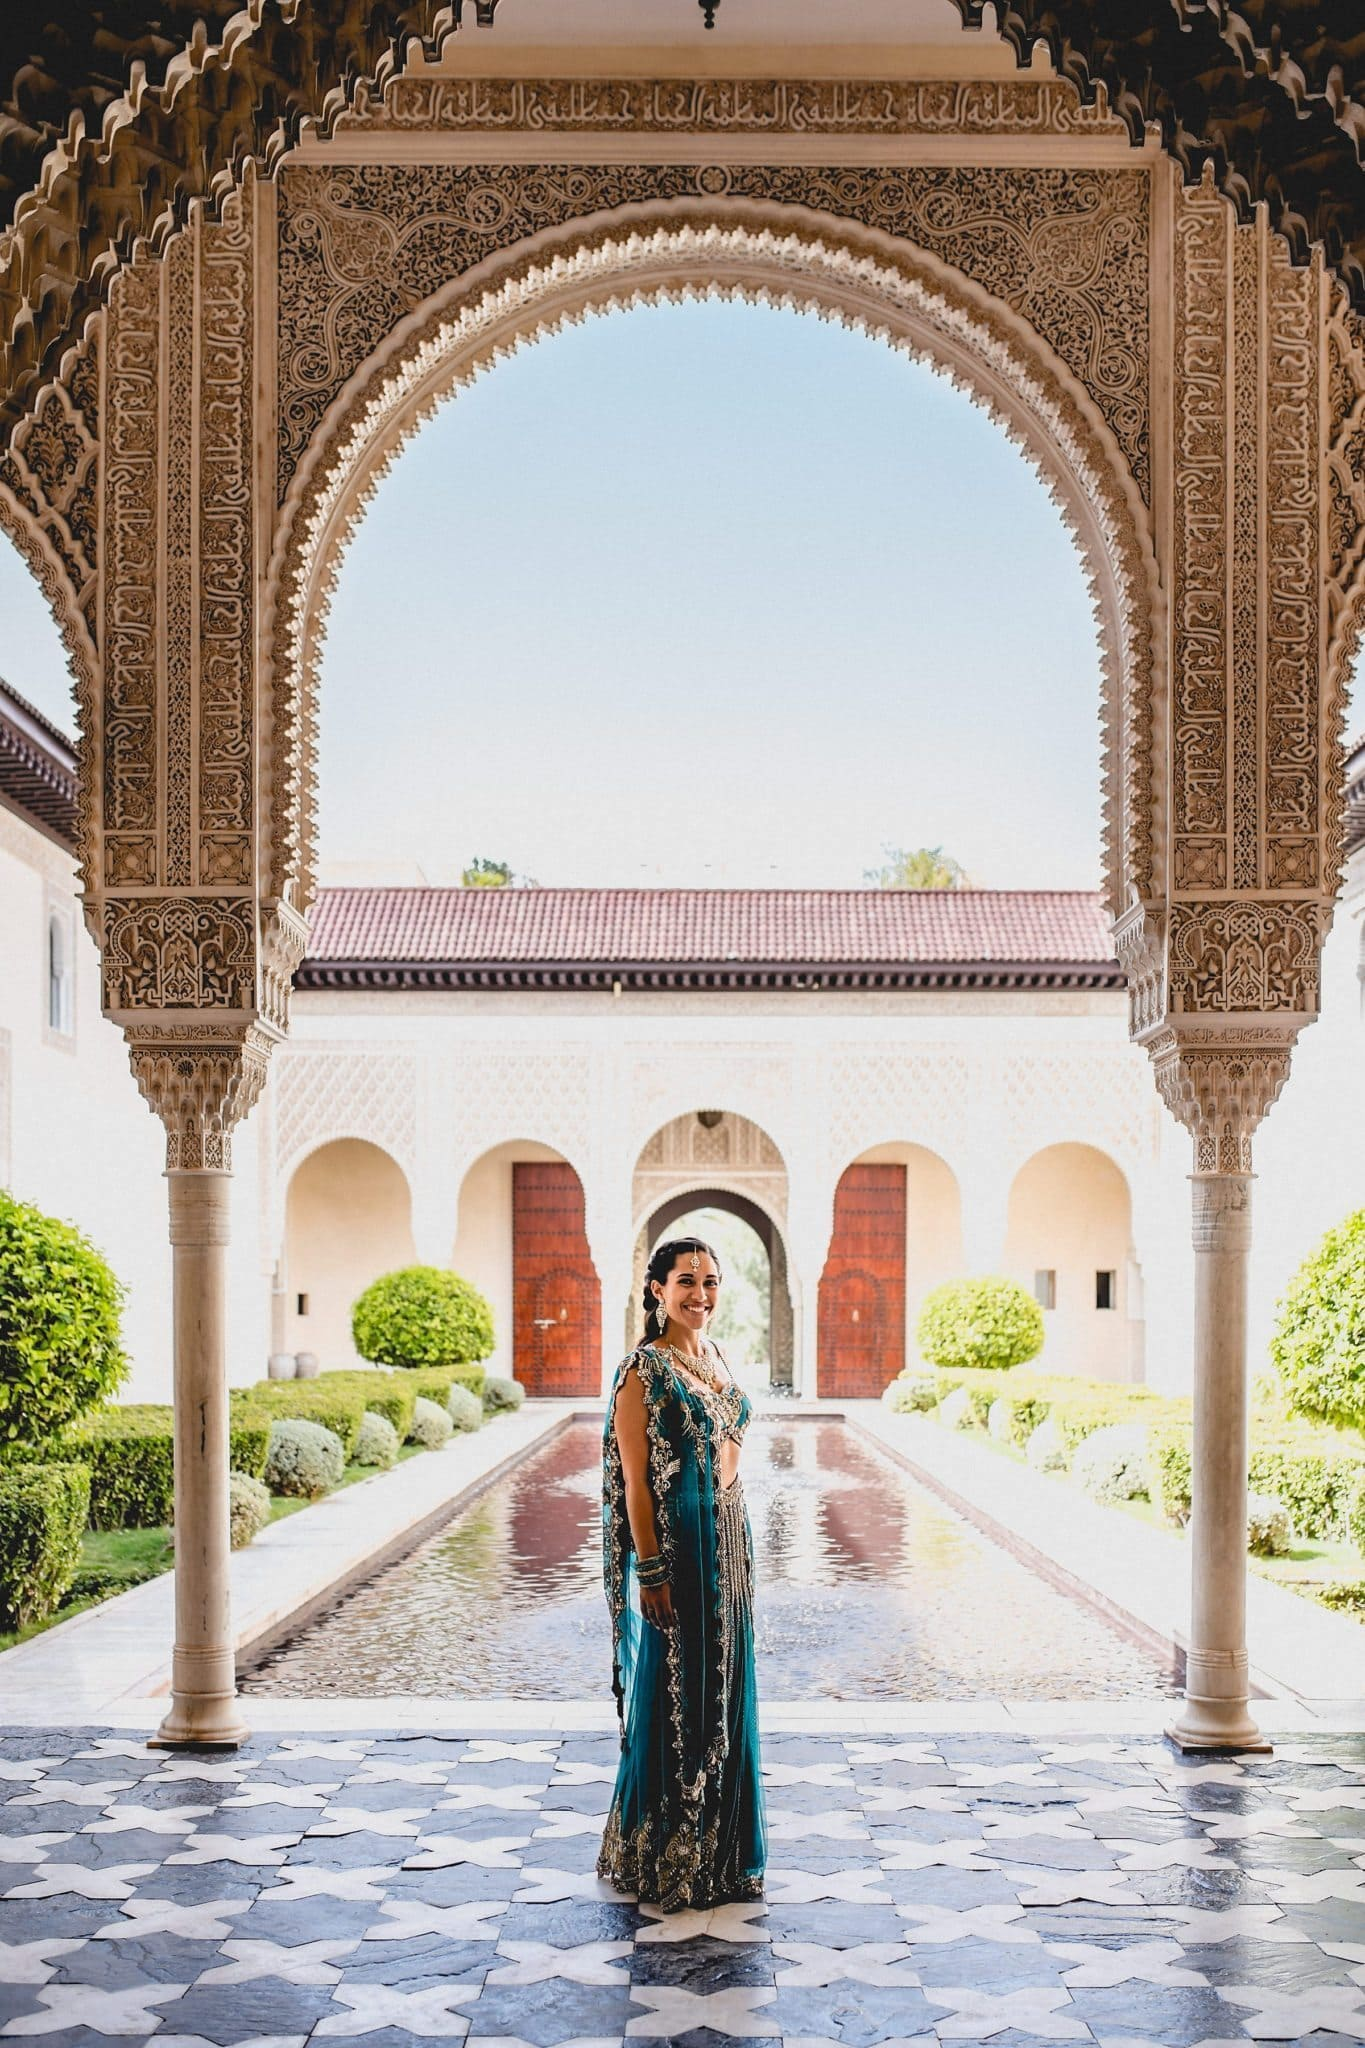 Indian bride standing under the Moroccan arches at Ksar Char Bagh in Marrakech